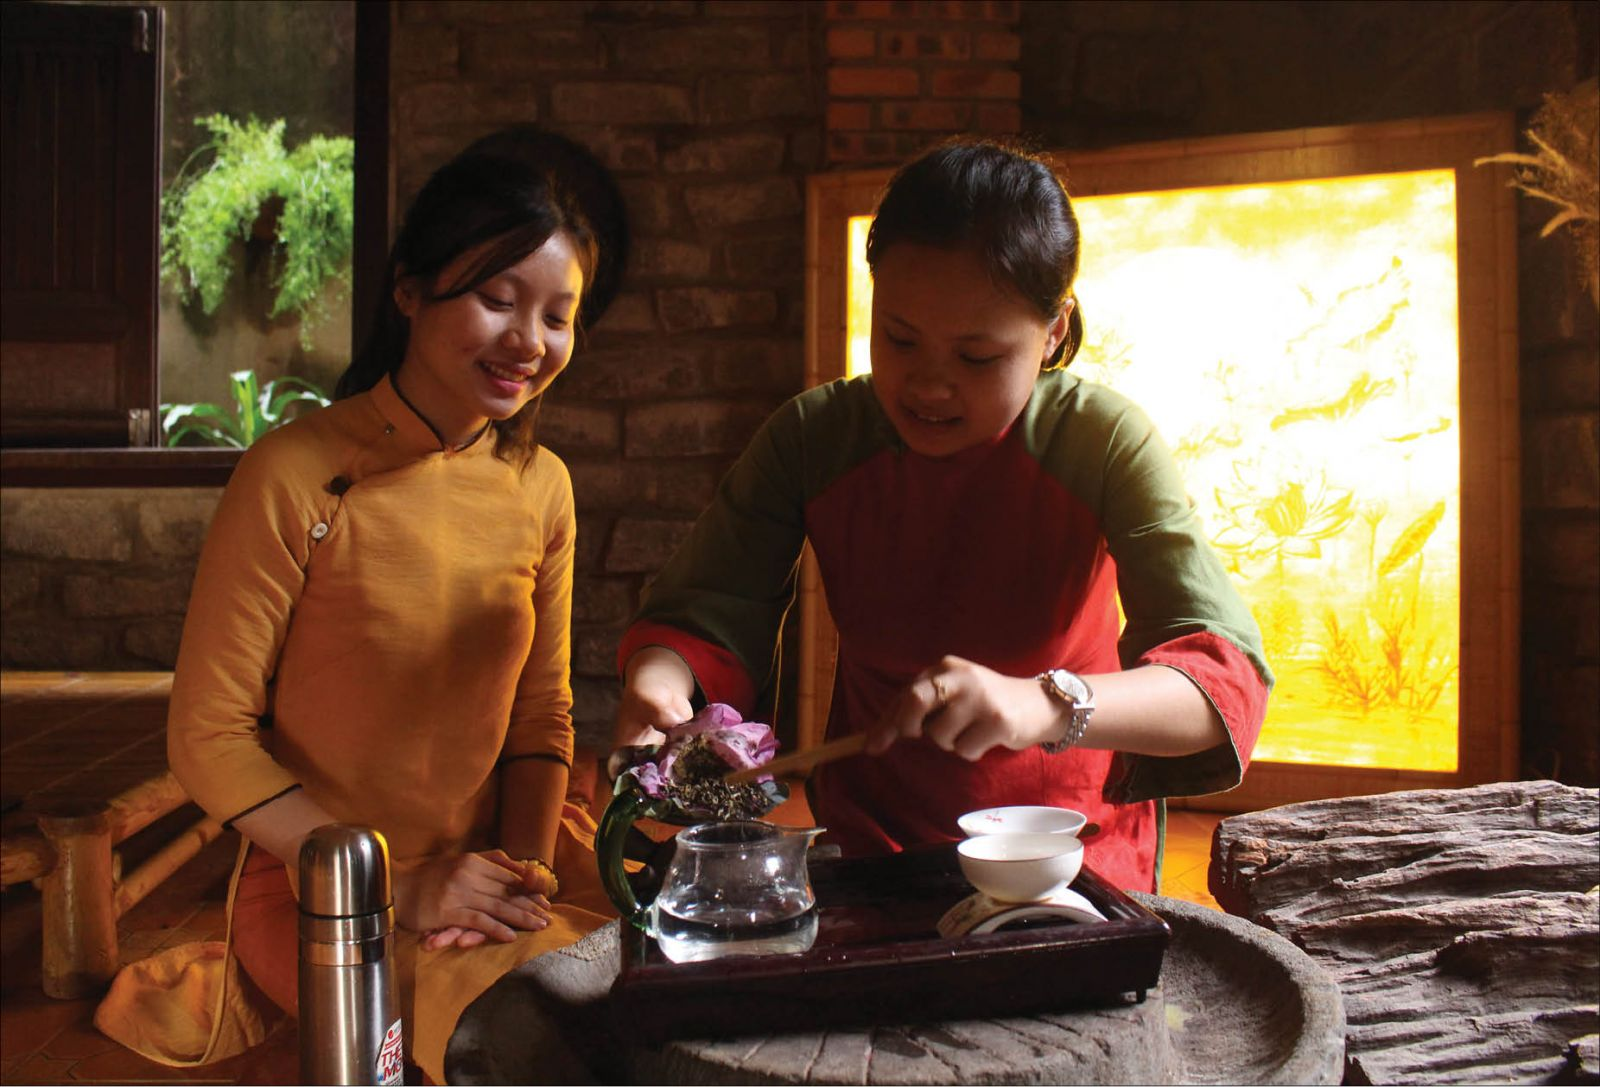 A tea lady (Trà nương) serving tea in a tea shop